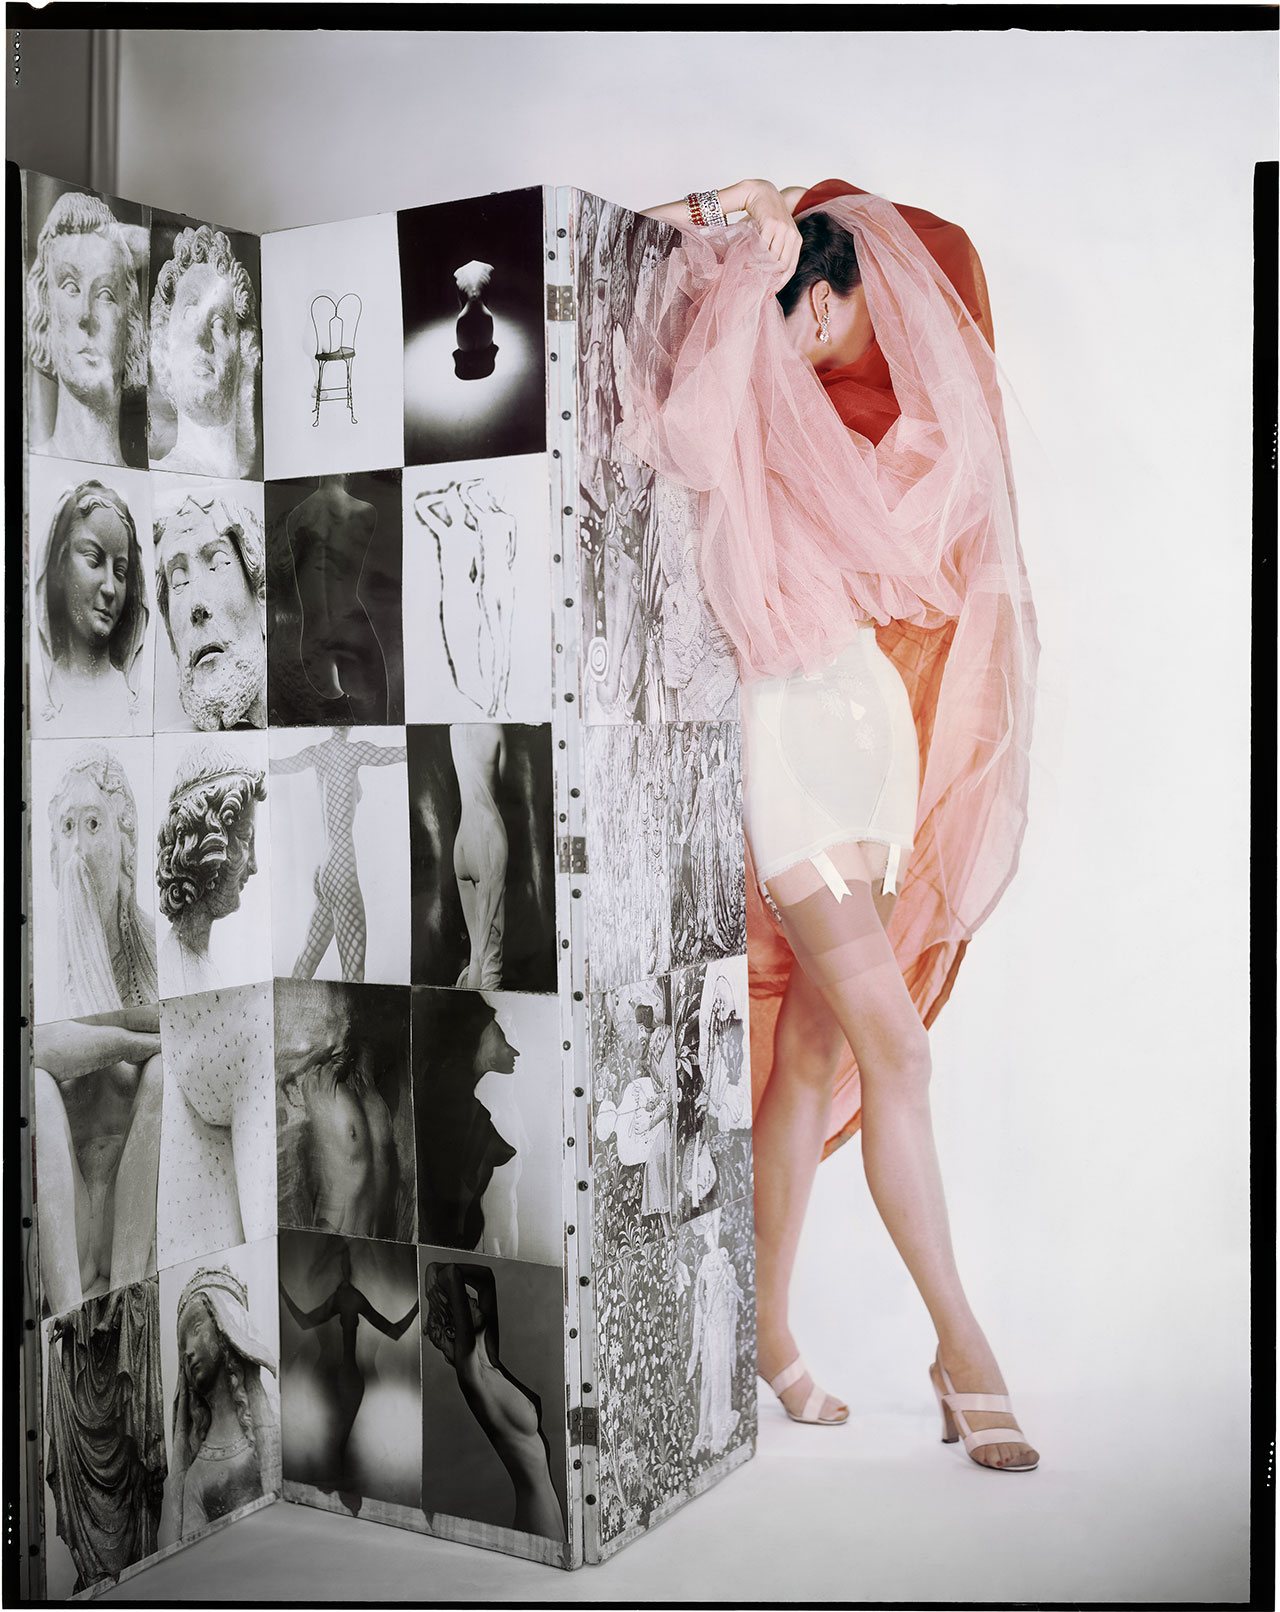 Lily of France Corset, Dior Organdi, Modeltex Low, Valley Sandals. Model: Ruth Knowles. In front of a screen of photographs by Erwin Blumenfeld. Variant of the photograph published in Vogue US February 15, 1953 © The Estate of Erwin Blumenfeld.